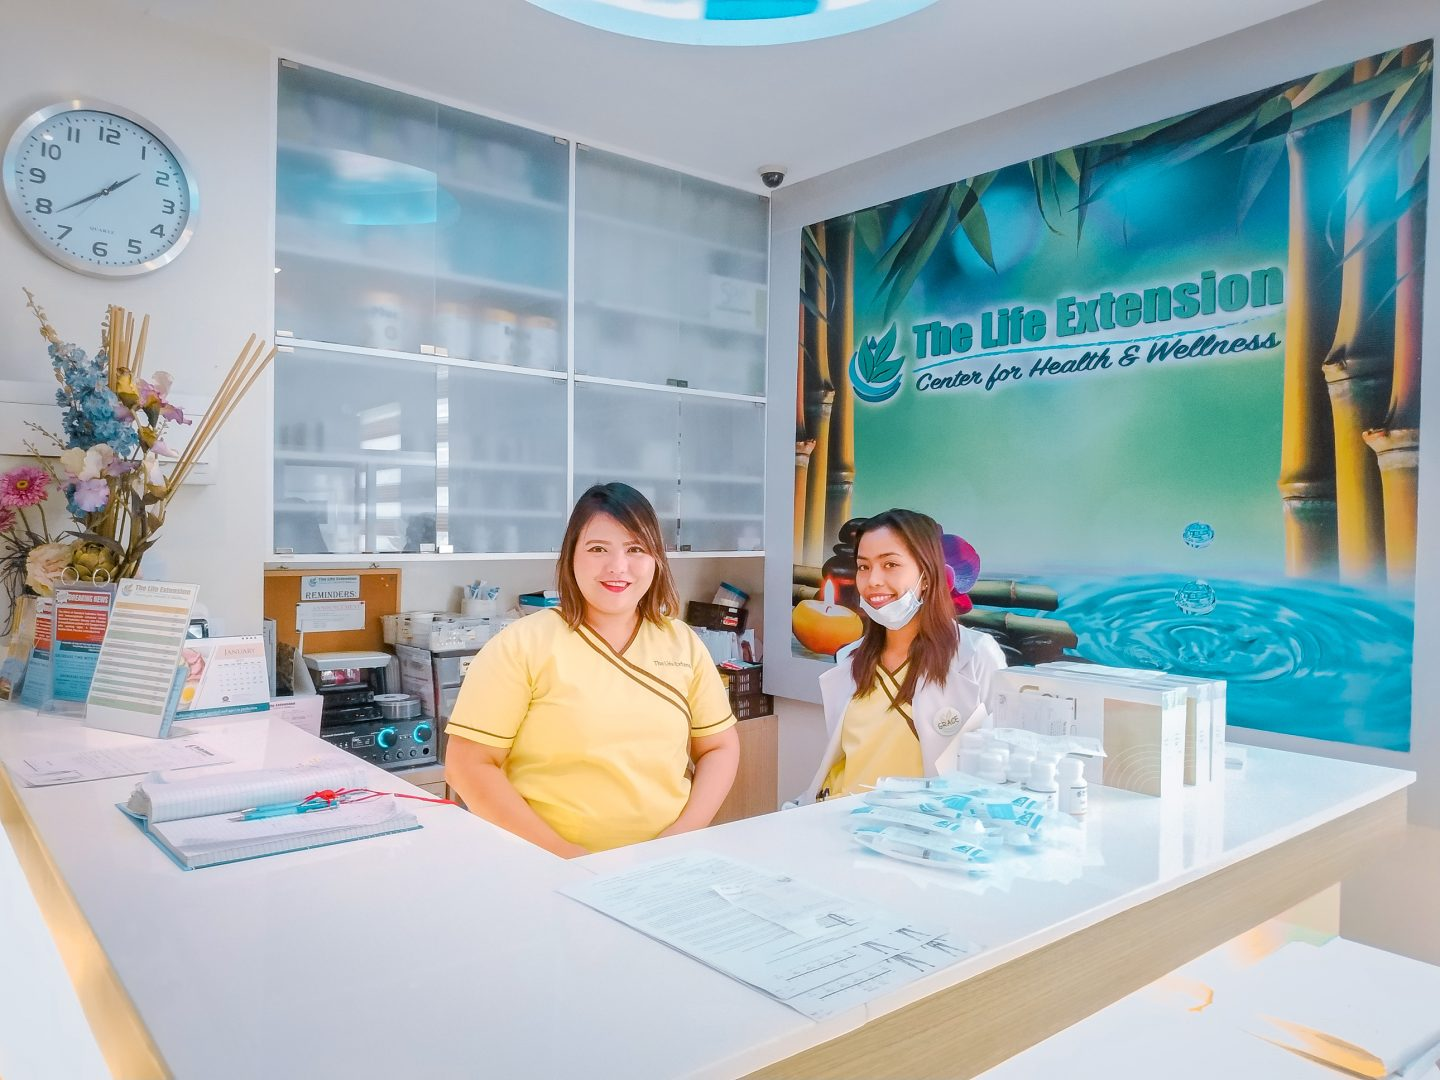 the-life-extension-experience-health-and-wellness-center-in-quezon-city